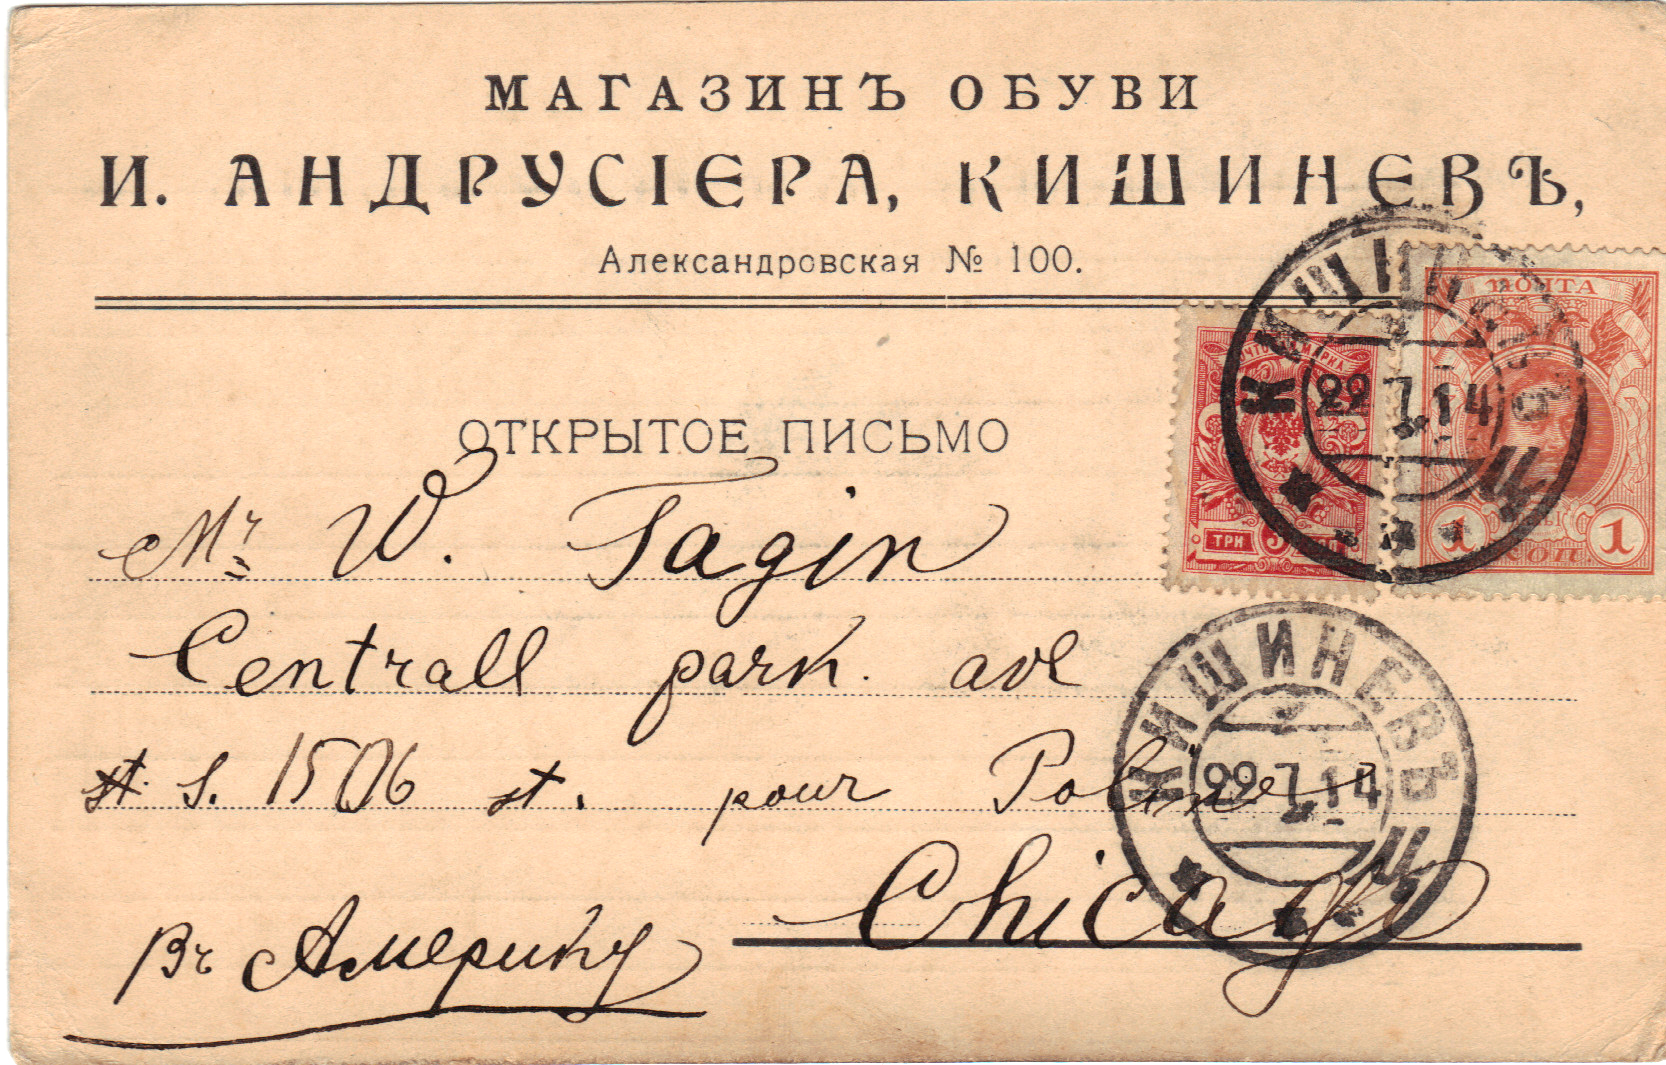 Postcard to Poline from Tsillie June 21, 1914 A